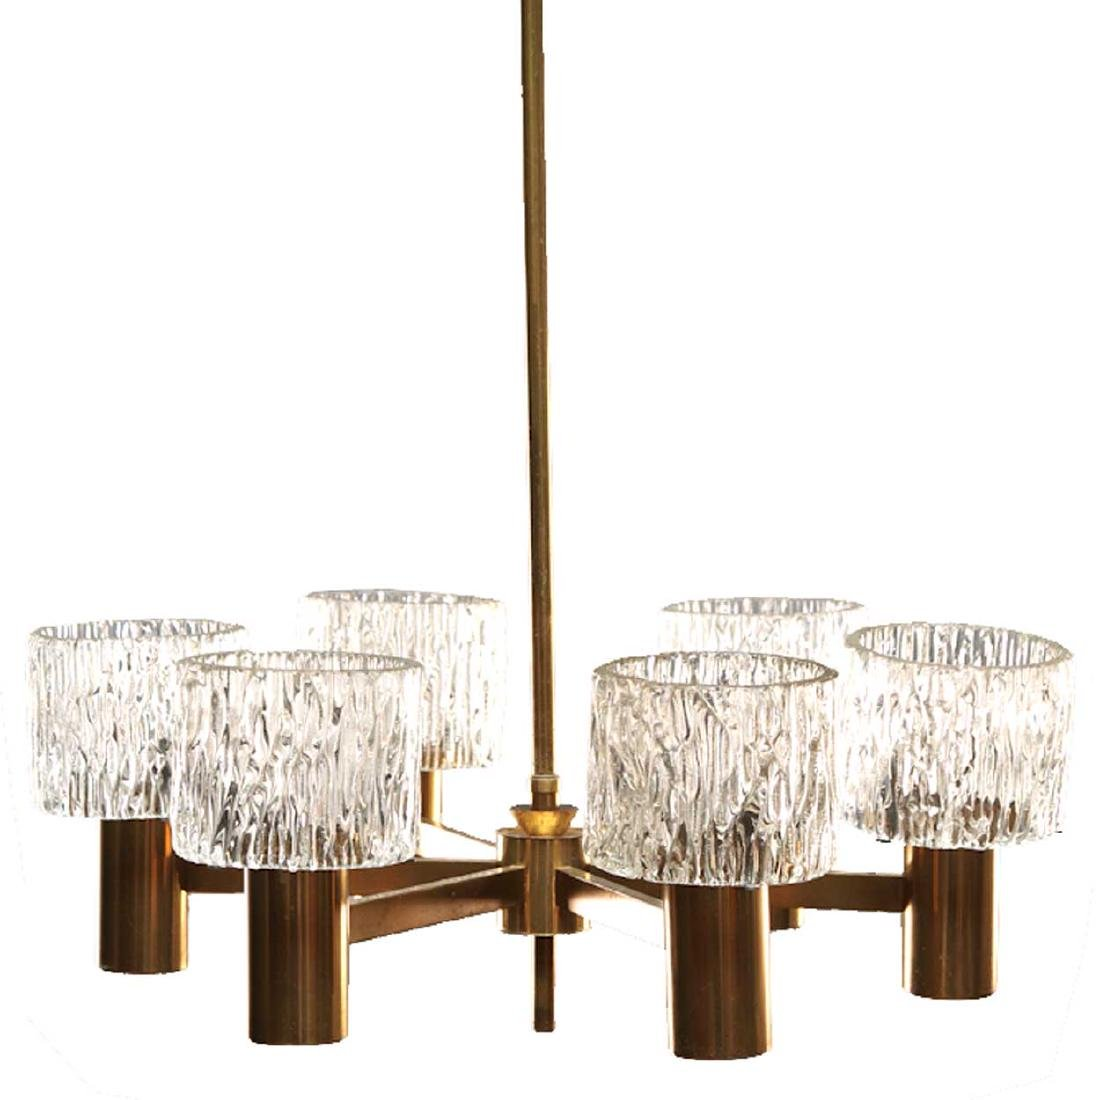 Swedish CARL FAGERLUND for Orrefors Glass Chandelier